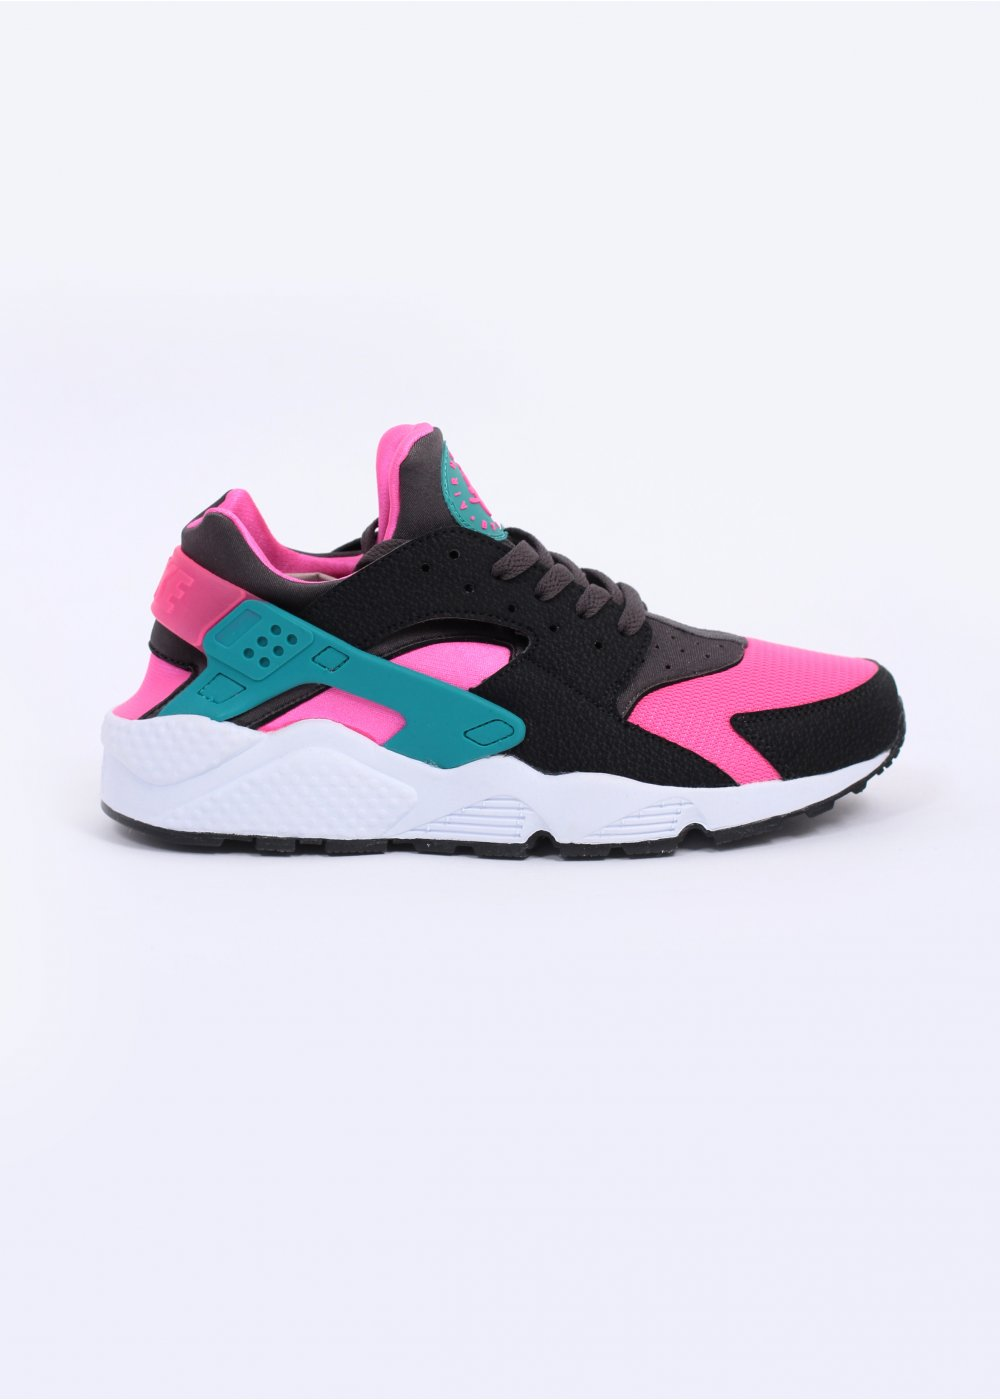 promo code e197f 6bf9c Air Huarache Trainers - Hyper Pink   Dusty Cactus   Medium Grey